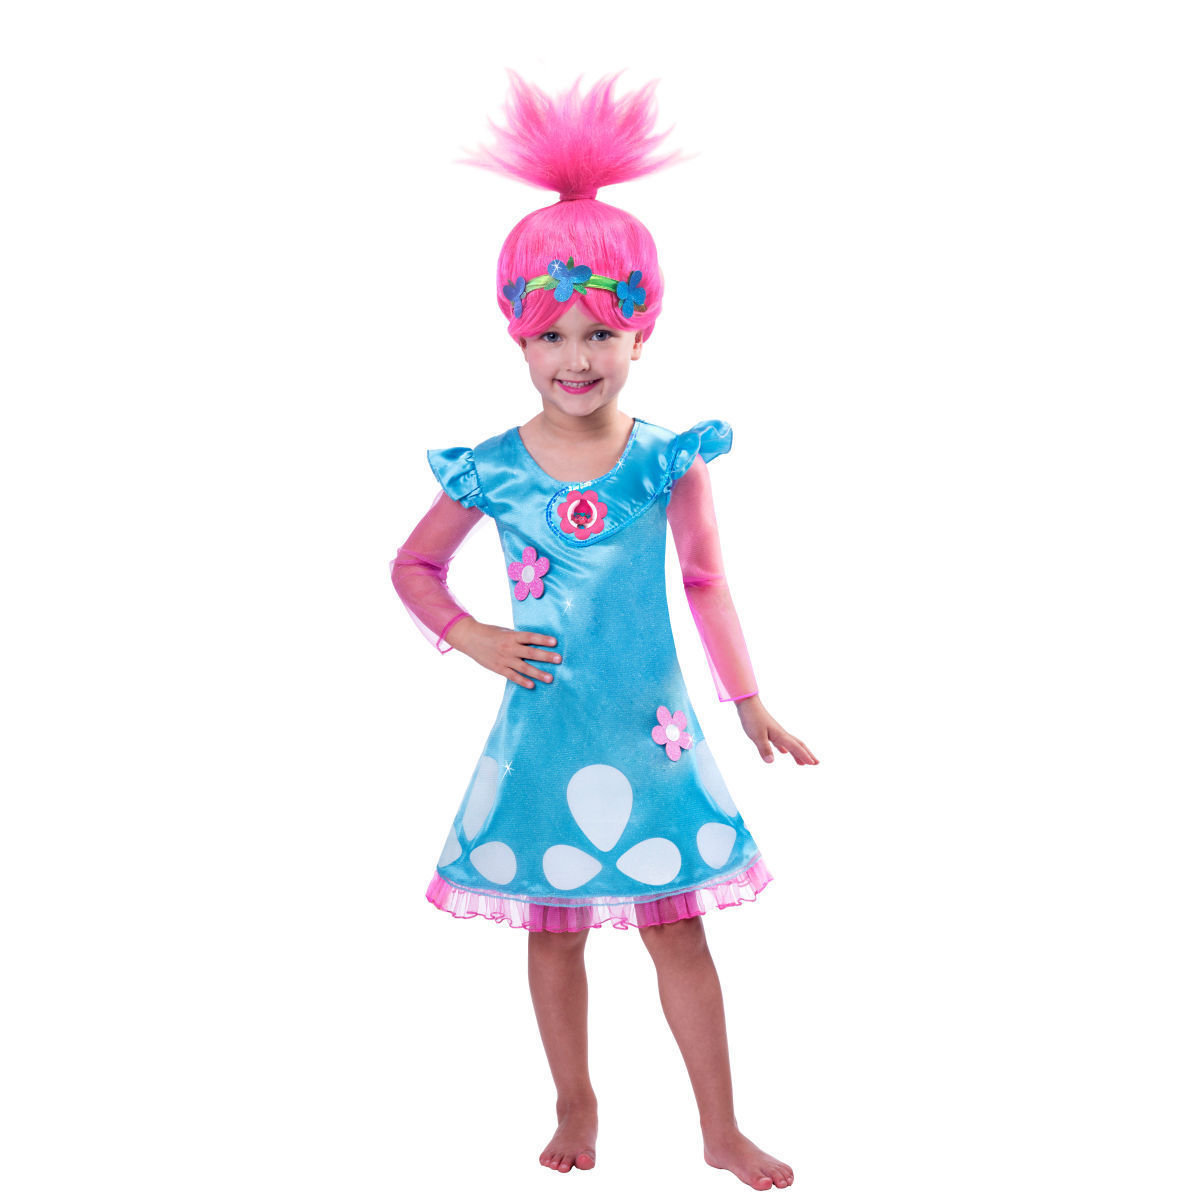 baby girls wearing a wig summer trolls dress christmas costumes for girls lace mesh clothing children vampirina necklace dress in dresses from mother kids